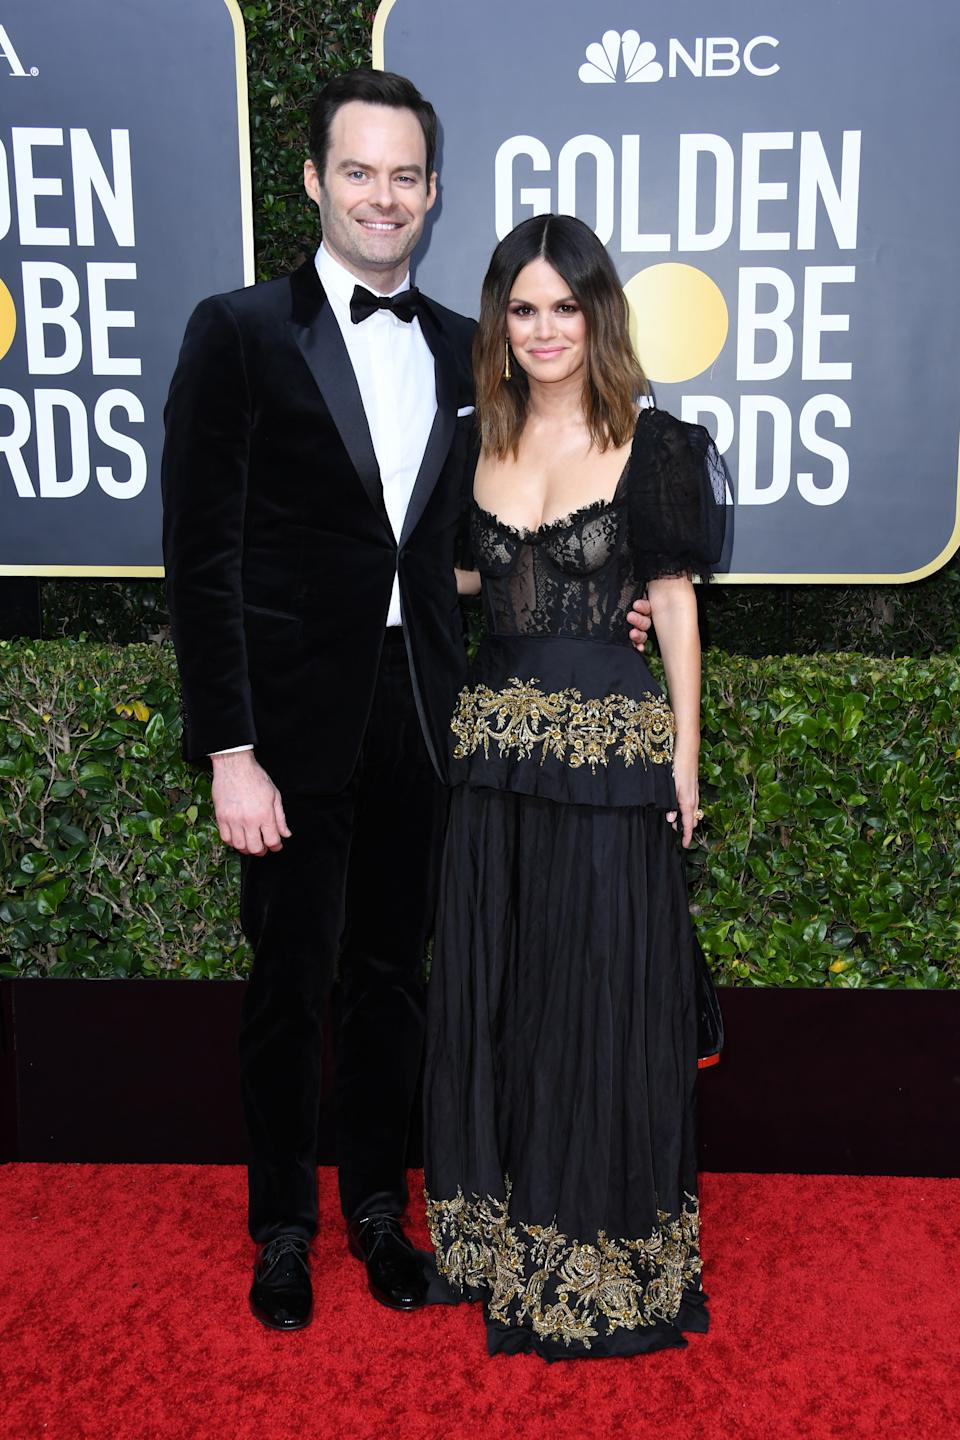 """The """"Barry"""" star and """"The O.C."""" alum made their red carpet debut as a couple in coordinating black looks. (Photo by Jon Kopaloff/Getty Images)"""